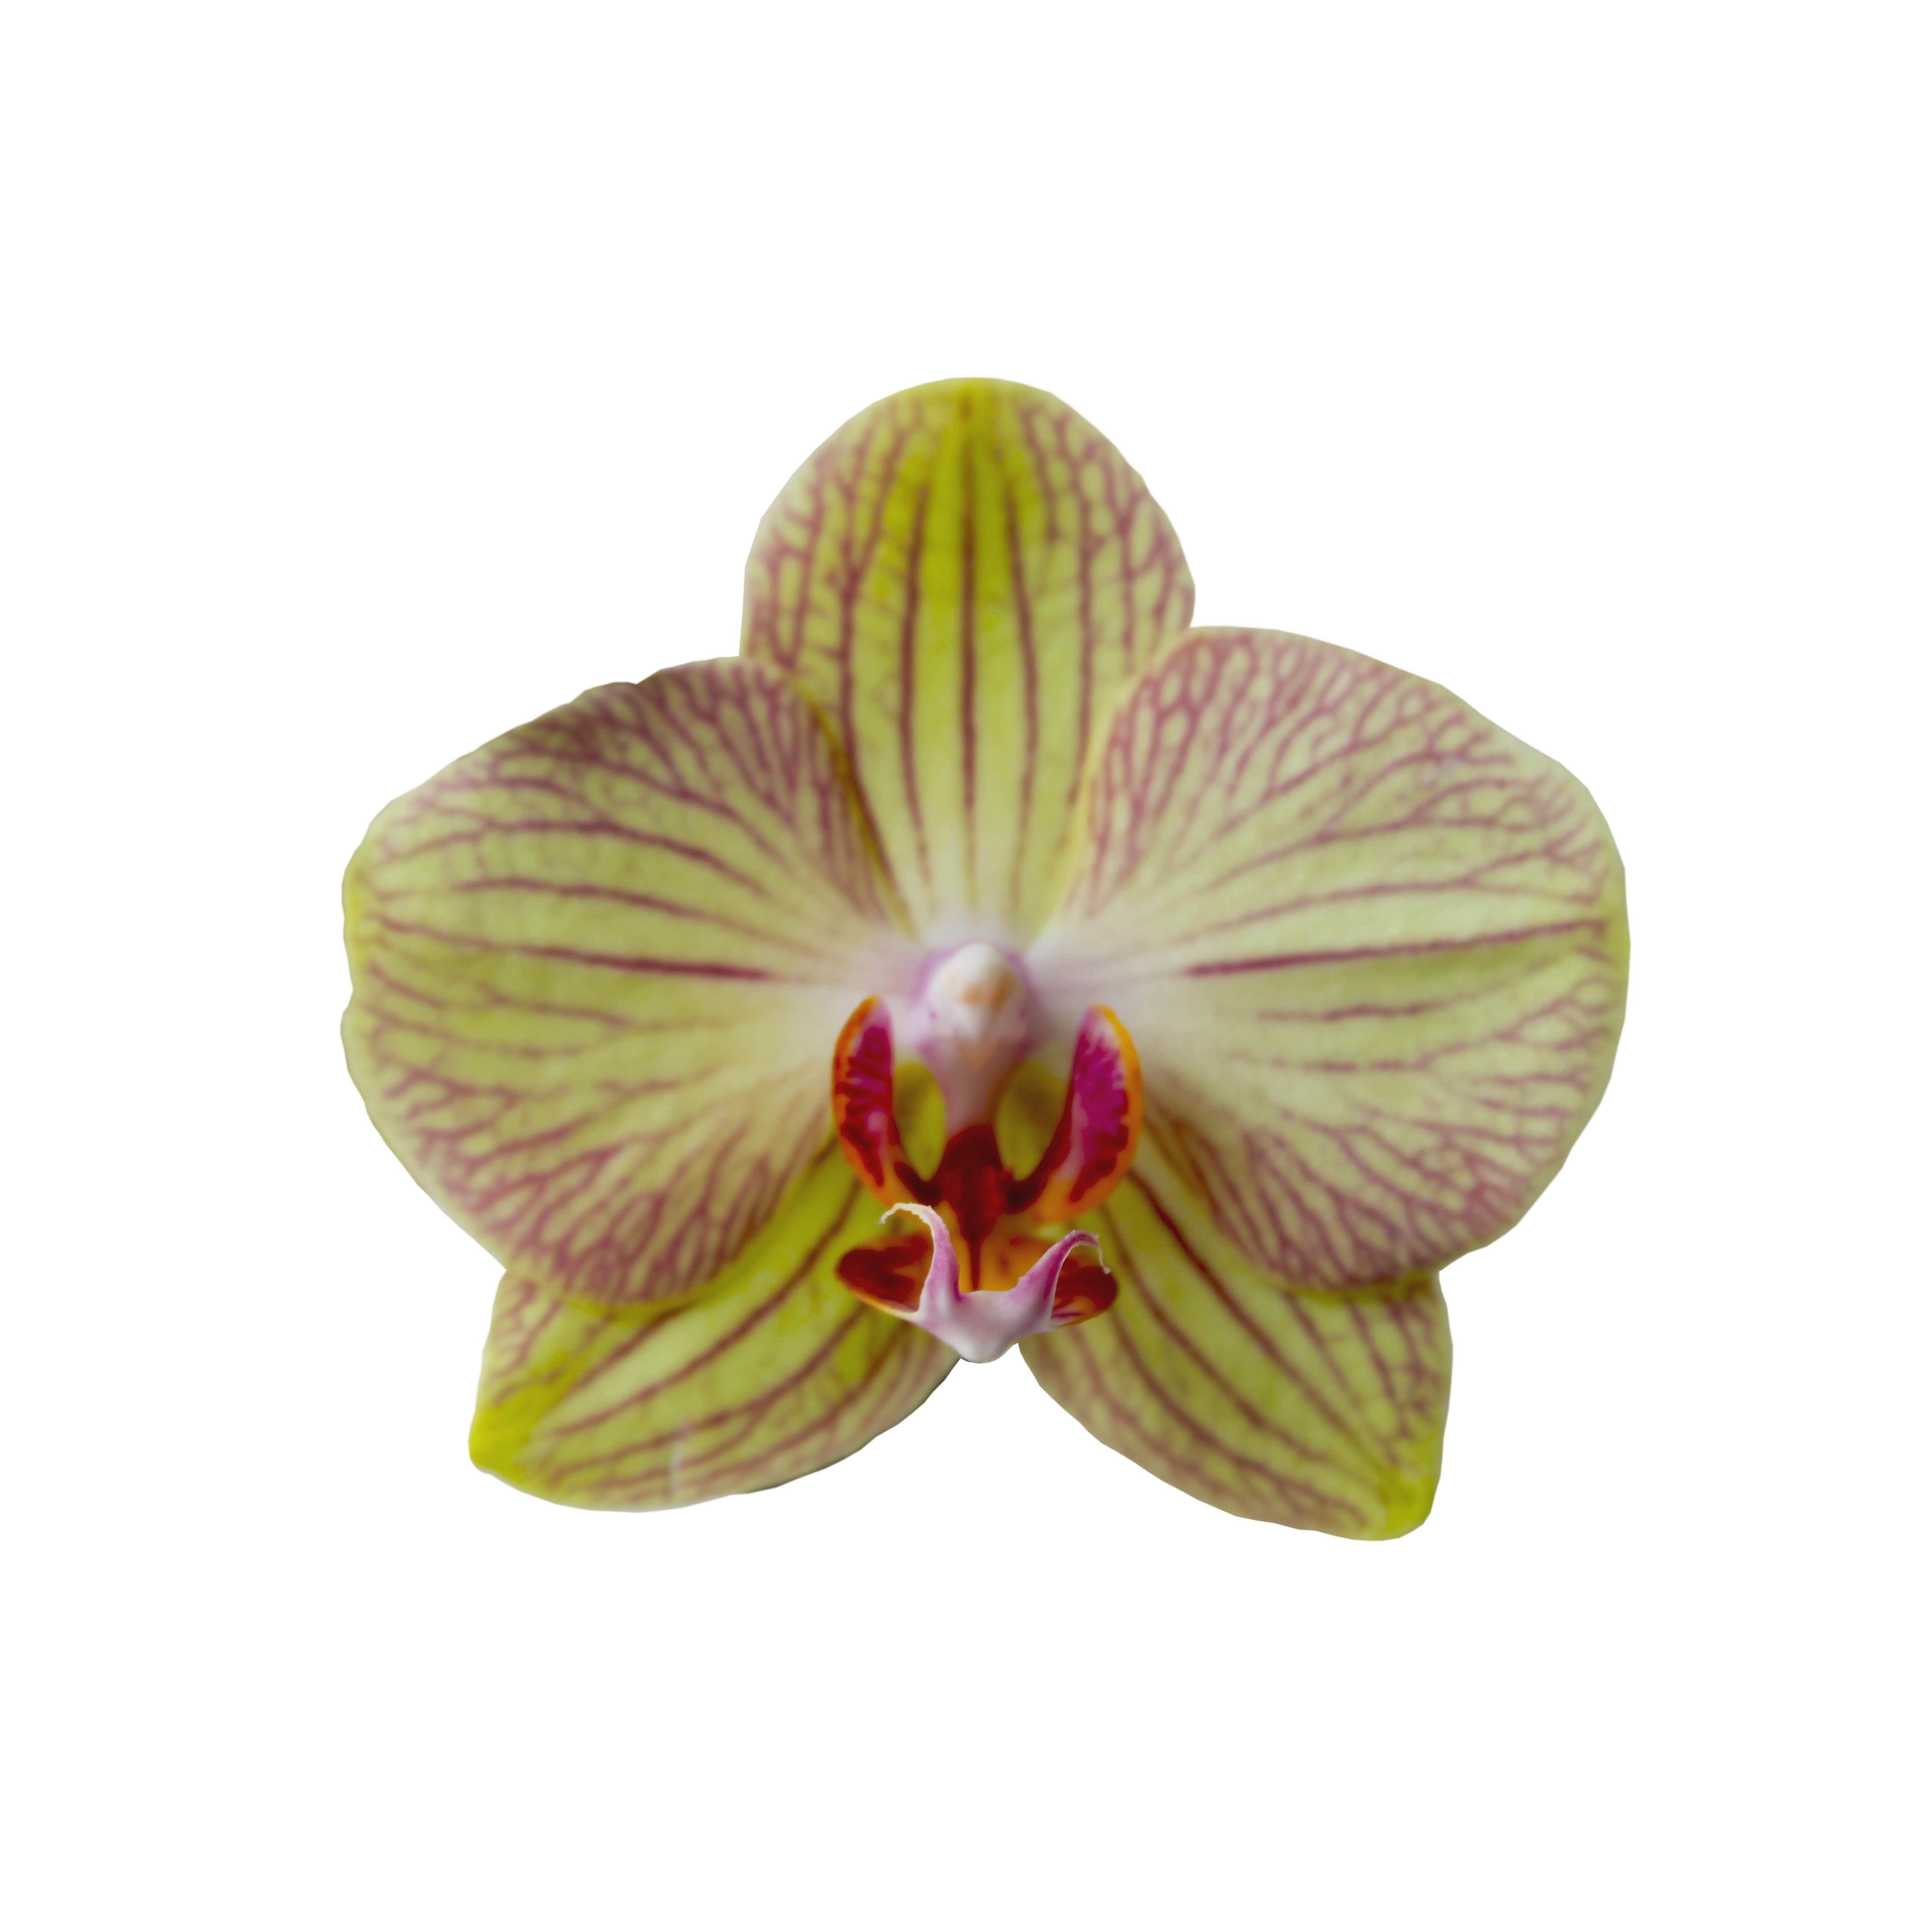 Orchid 1 colour 1g my attempts to diminish the stereotypical view of women as sexual objects by turning the vagina into a symbol that represents strength and womanhood buycottarizona